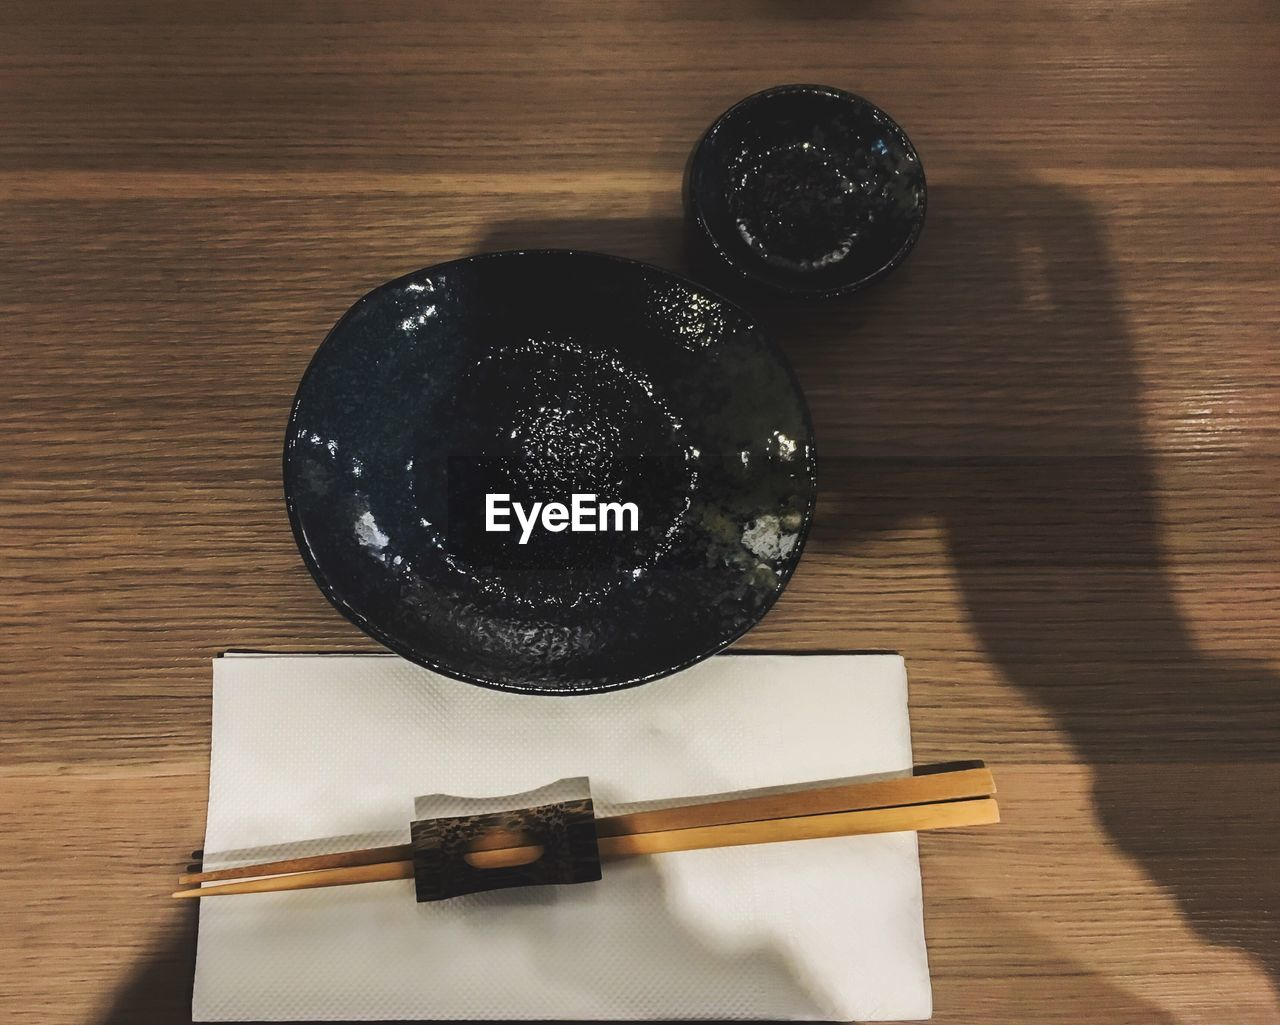 table, wood - material, still life, indoors, high angle view, no people, directly above, wood, black color, shadow, food and drink, food, close-up, wellbeing, group of objects, container, freshness, hardwood floor, indulgence, chopsticks, japanese food